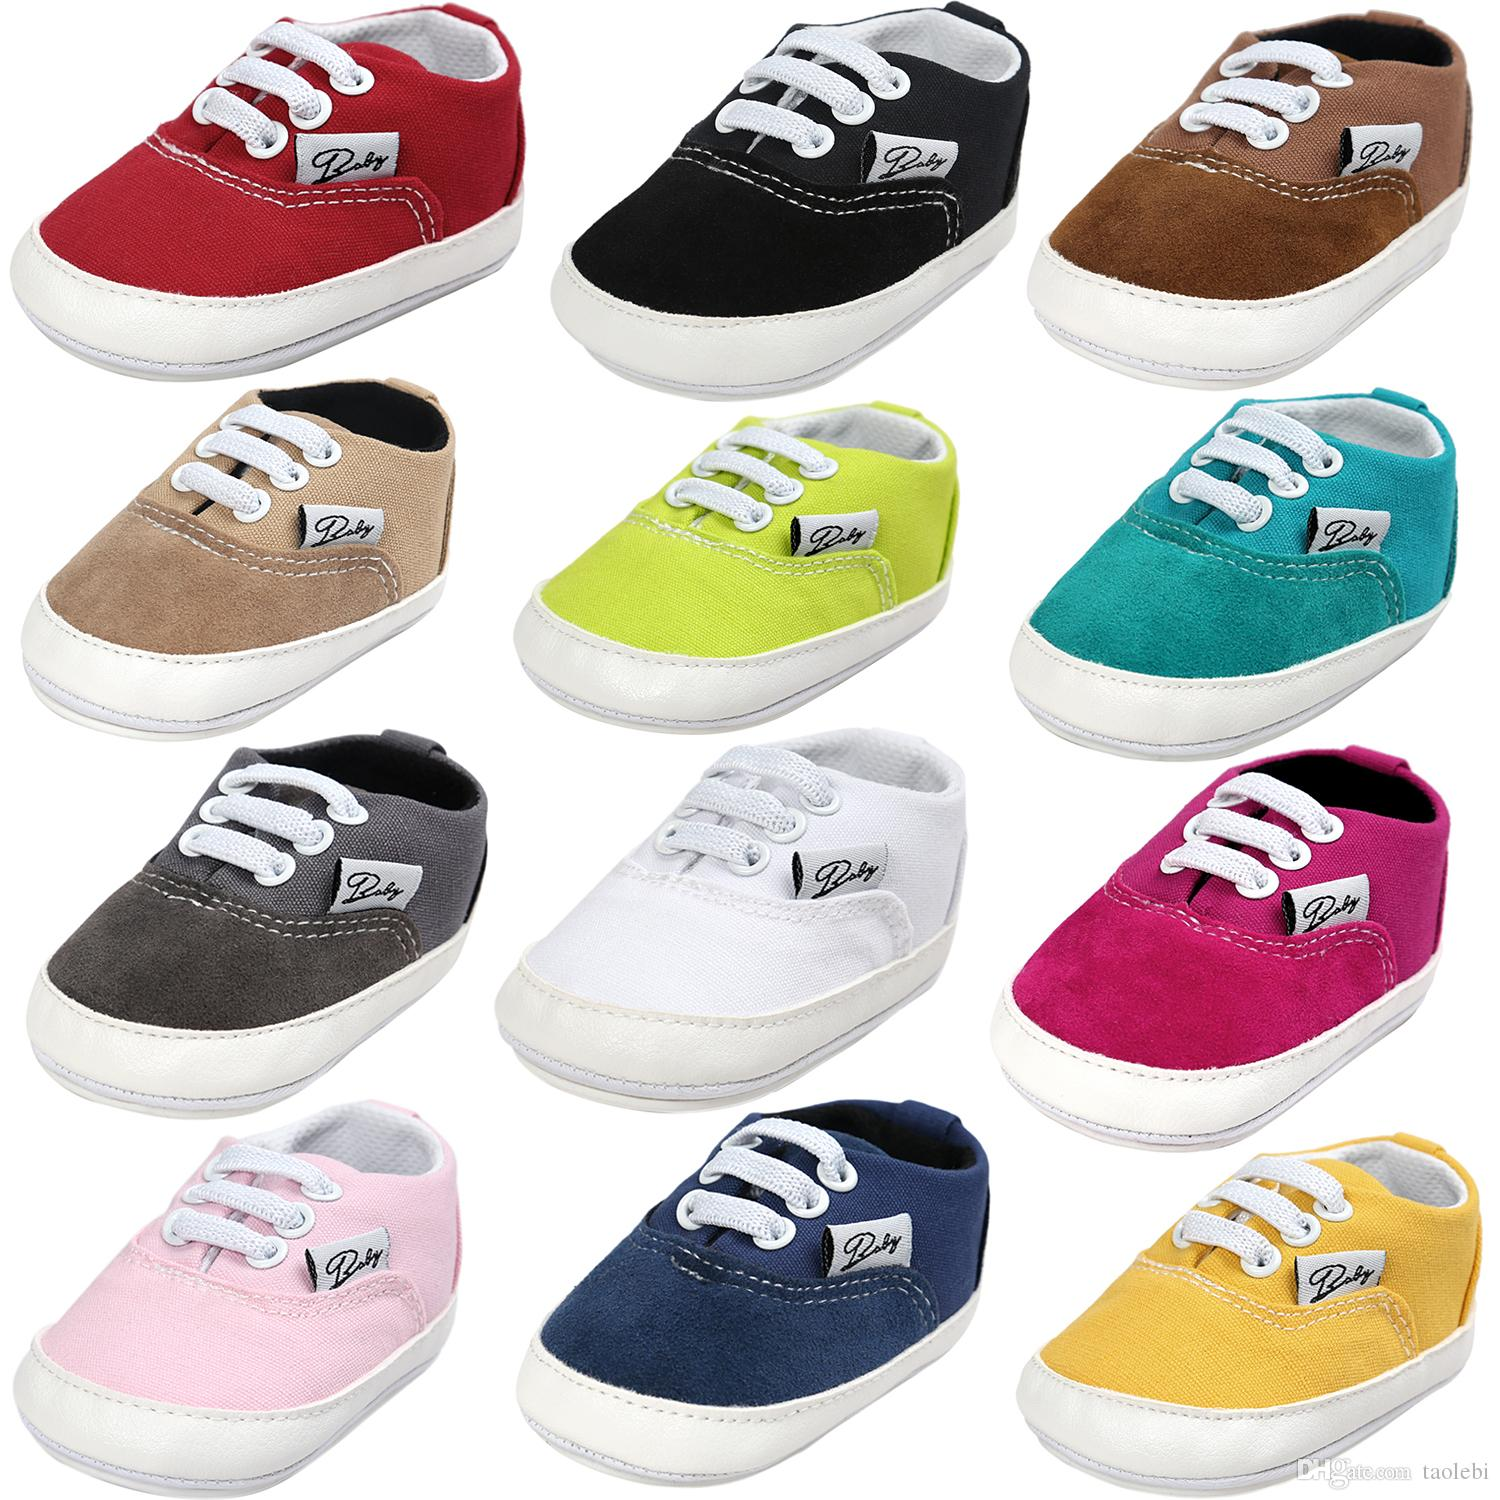 2c6f826208 3pairs/lot(mix colors)Fashion Rubber Soled baby causal shoes Baby Girl Boy  First Walkers Comfortable Rubber Soled toddler Shoes Top quality